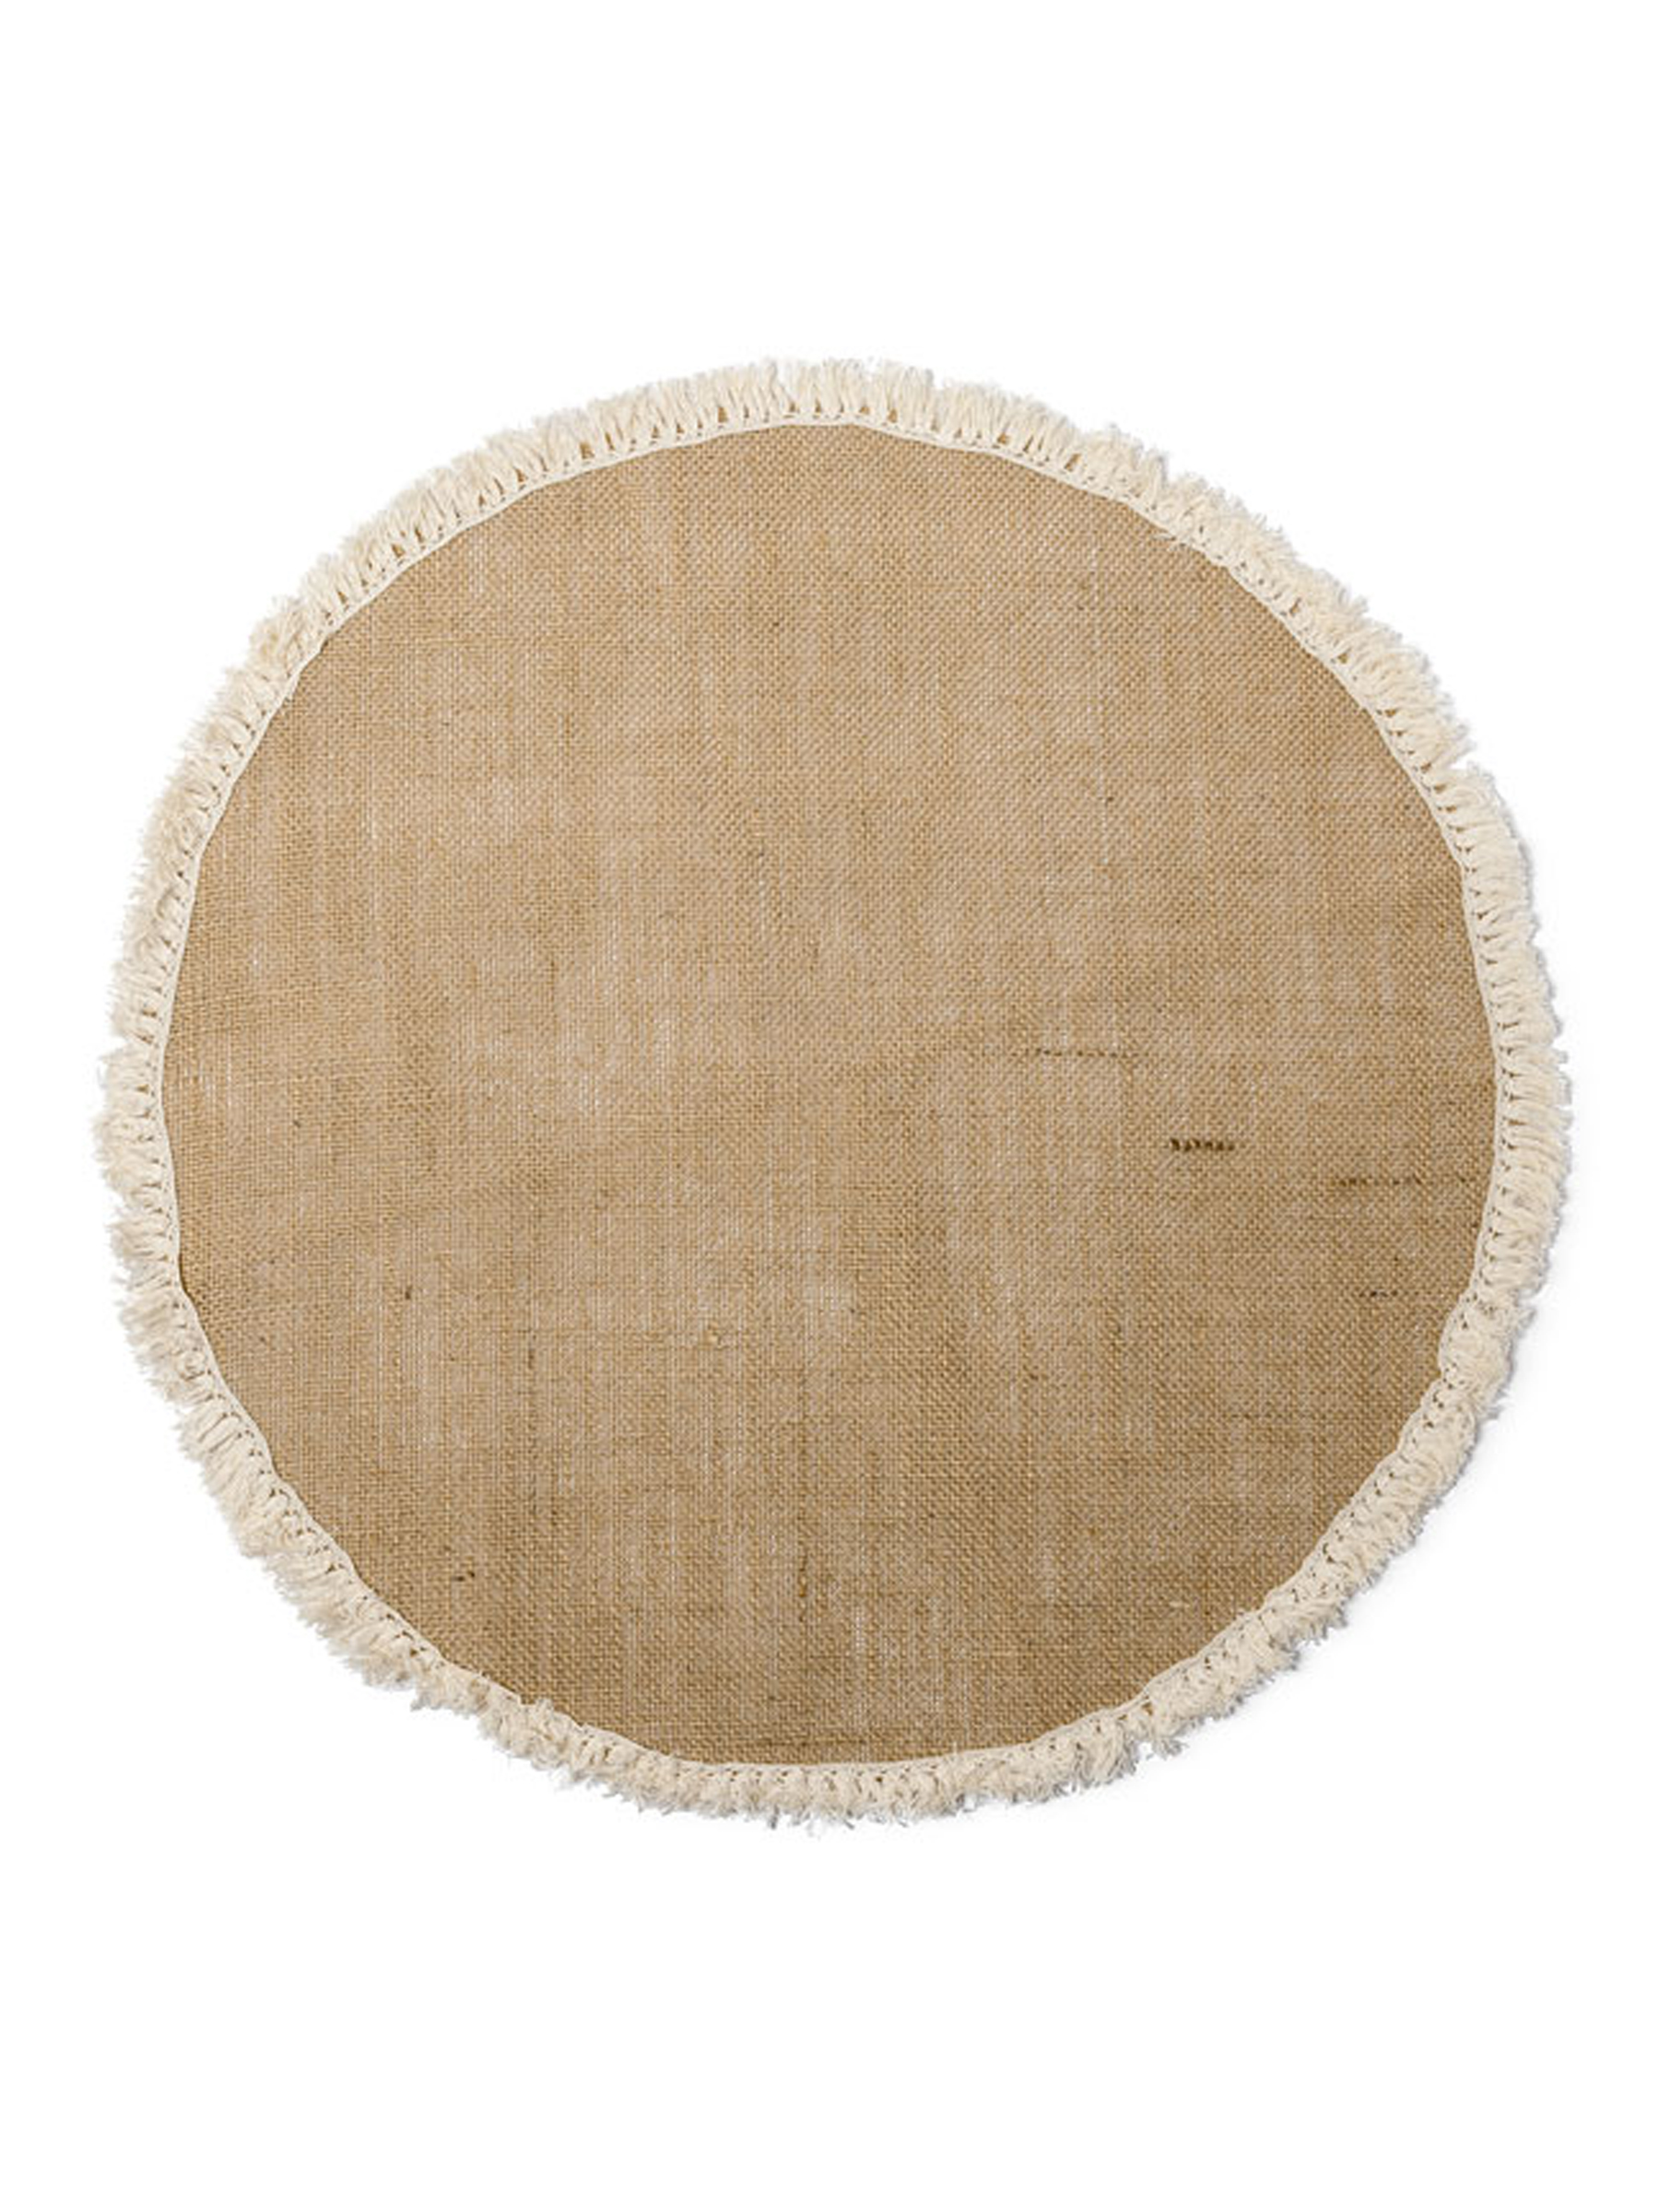 centre de table rond toile de jute franges 52 cm. Black Bedroom Furniture Sets. Home Design Ideas